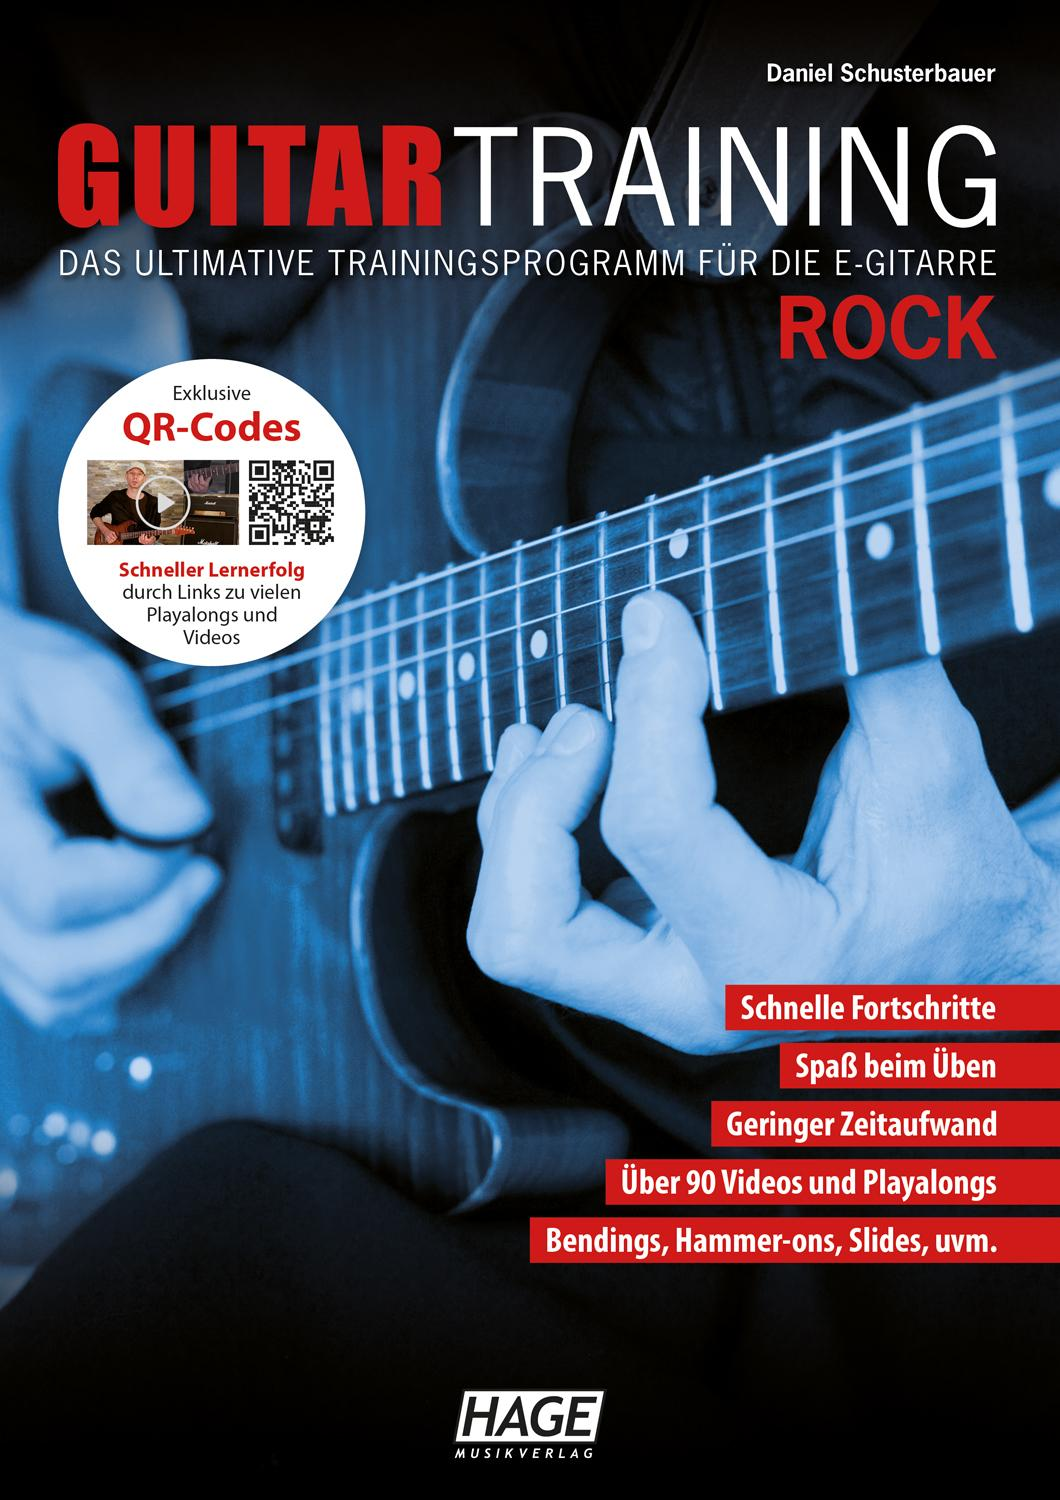 Guitar Training Rock Daniel Schusterbauer